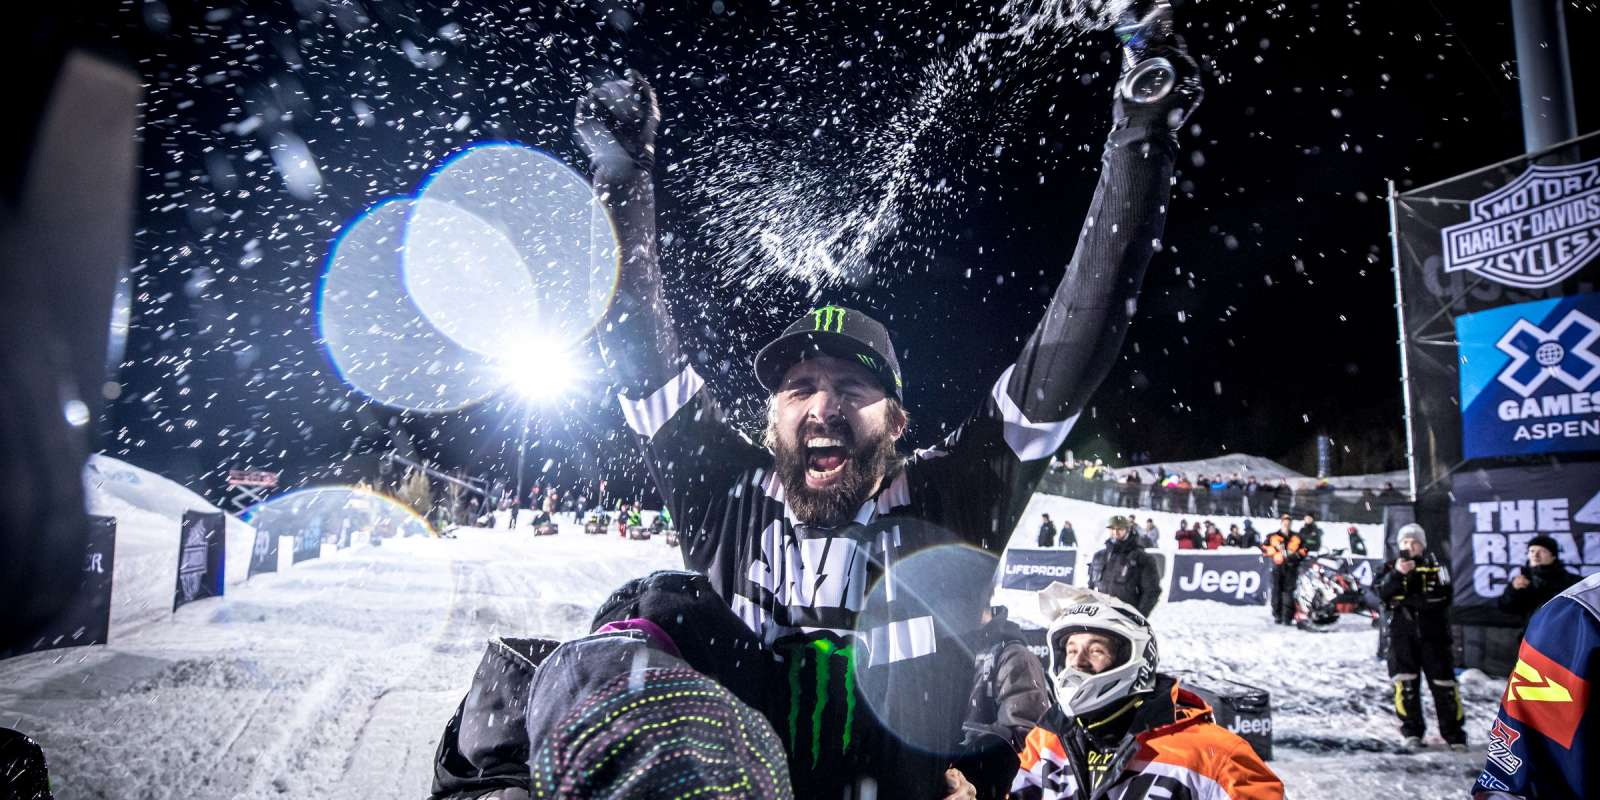 Team Arctic Black Cat Brett Turcotte goes double-Gold at X Games